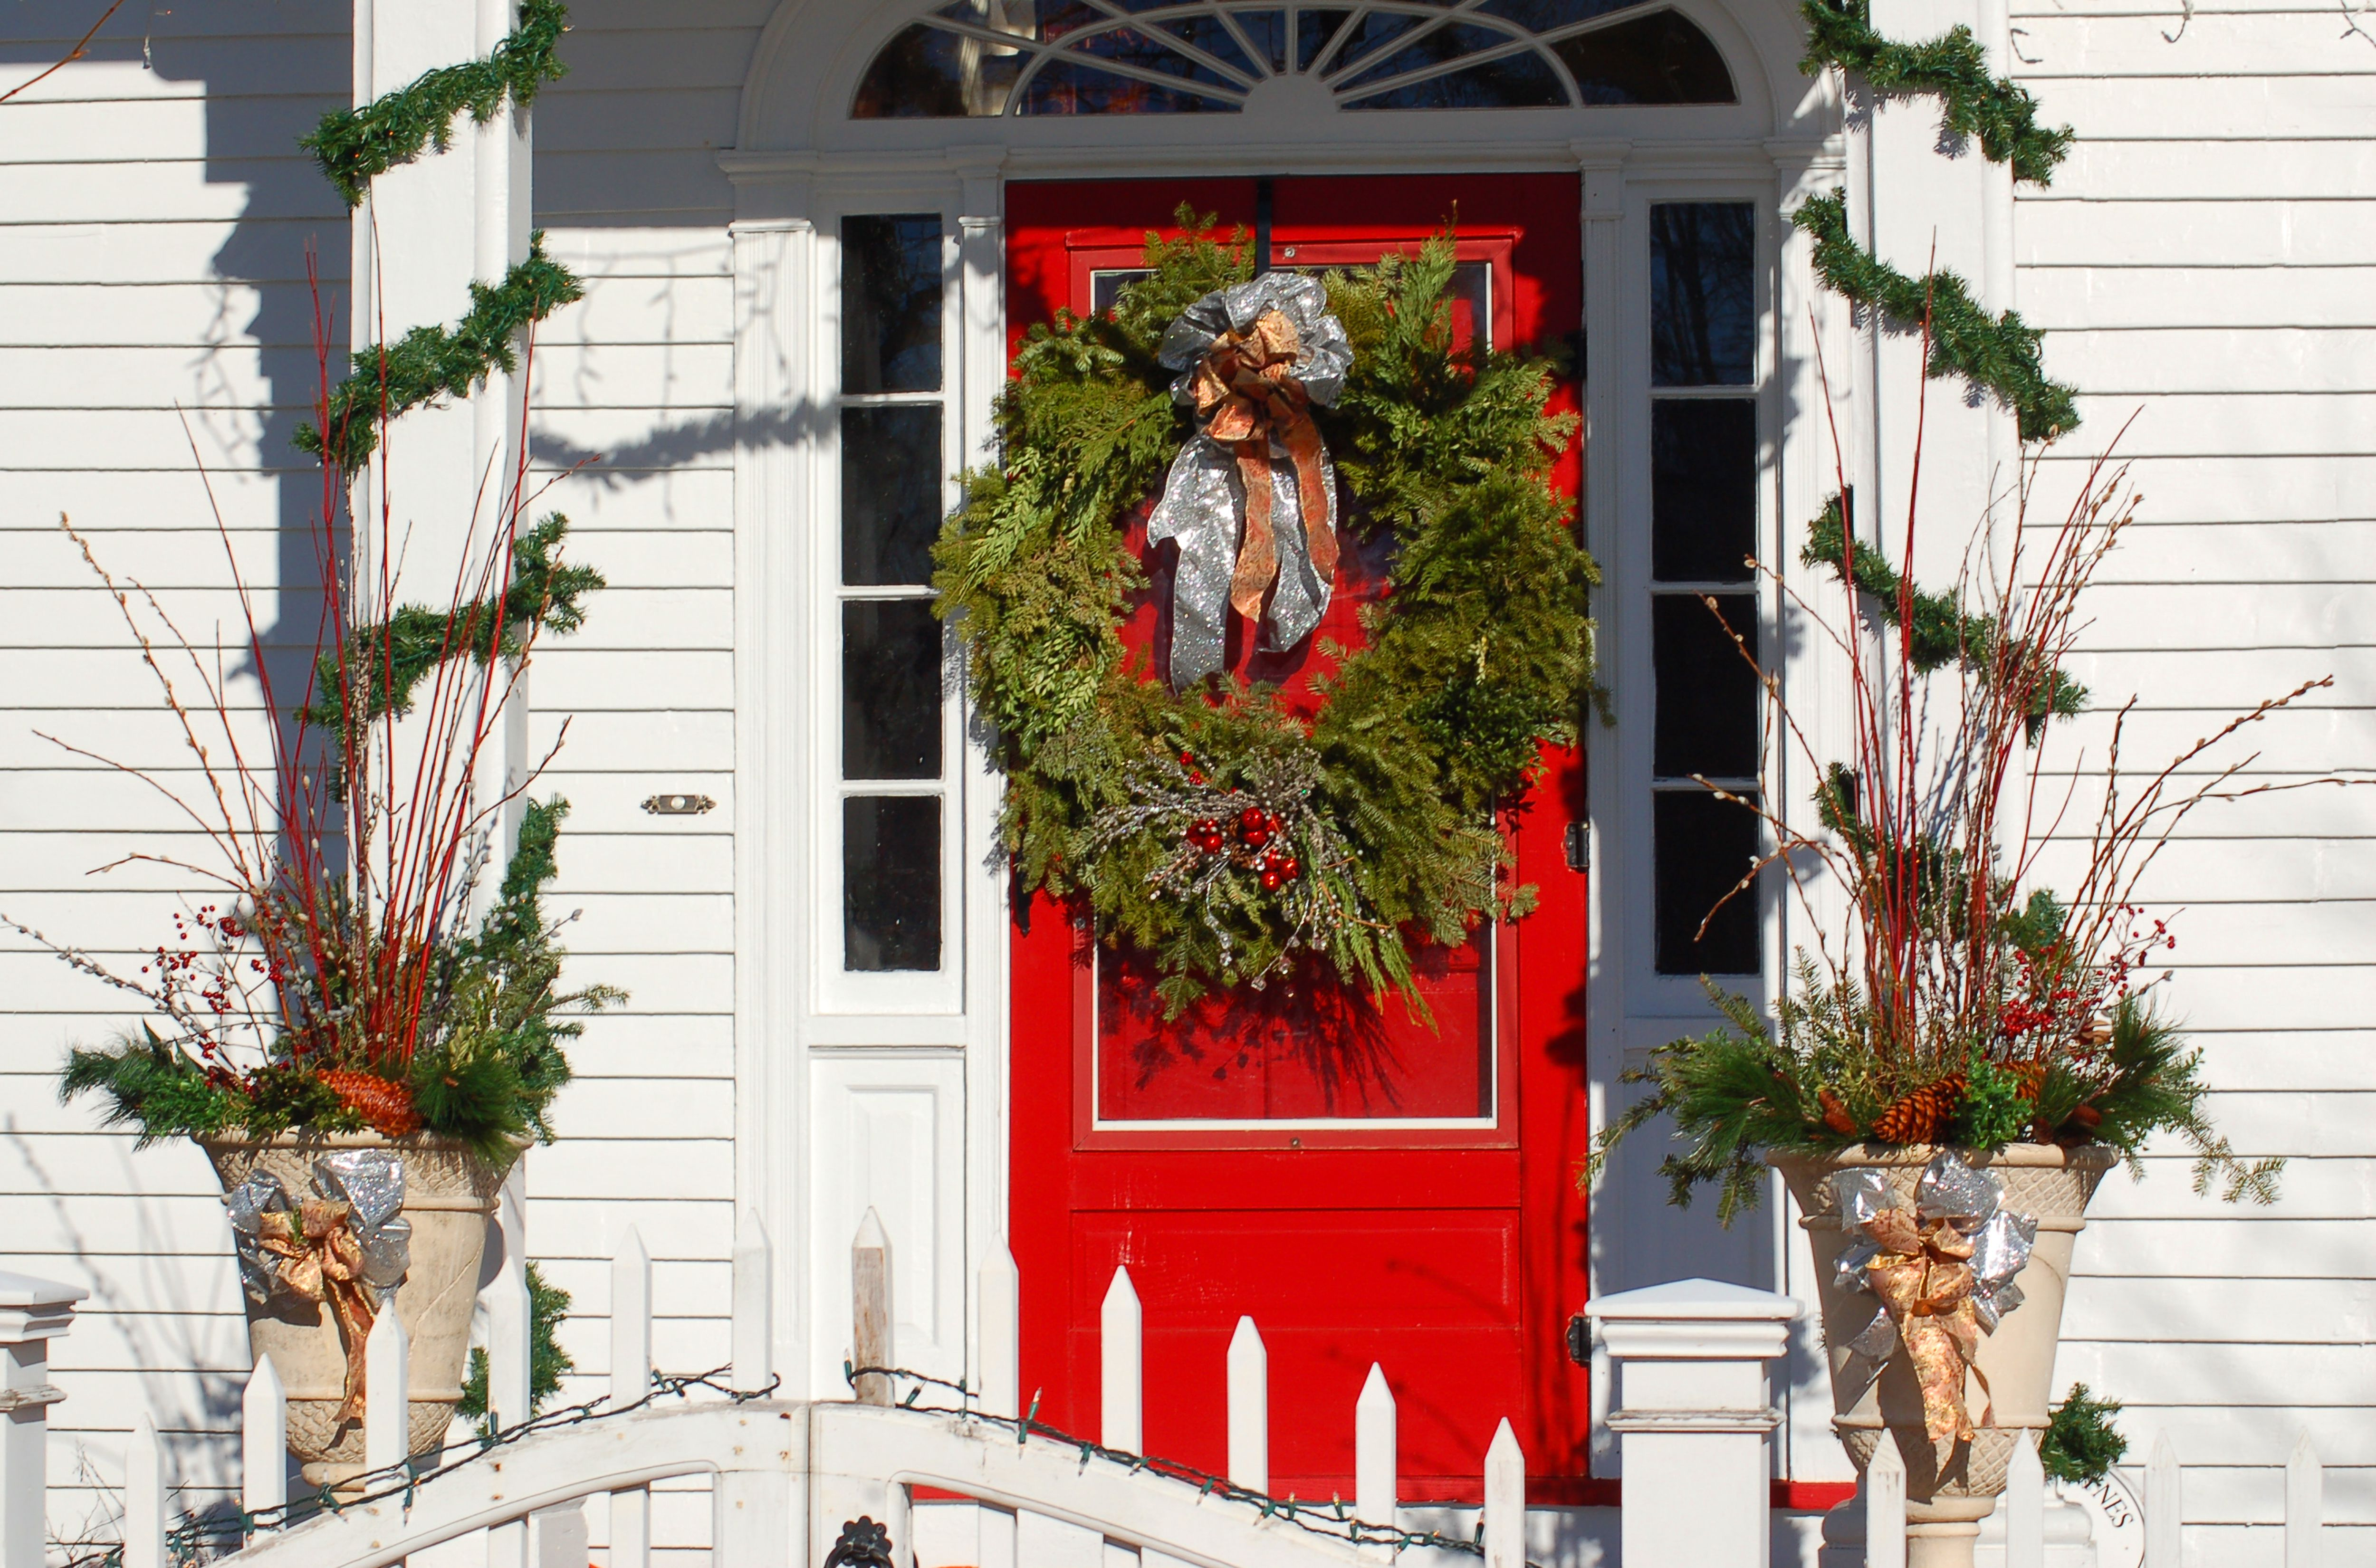 Columns with garlands and urns with Christmas decorations flanking a front door with a wreath.